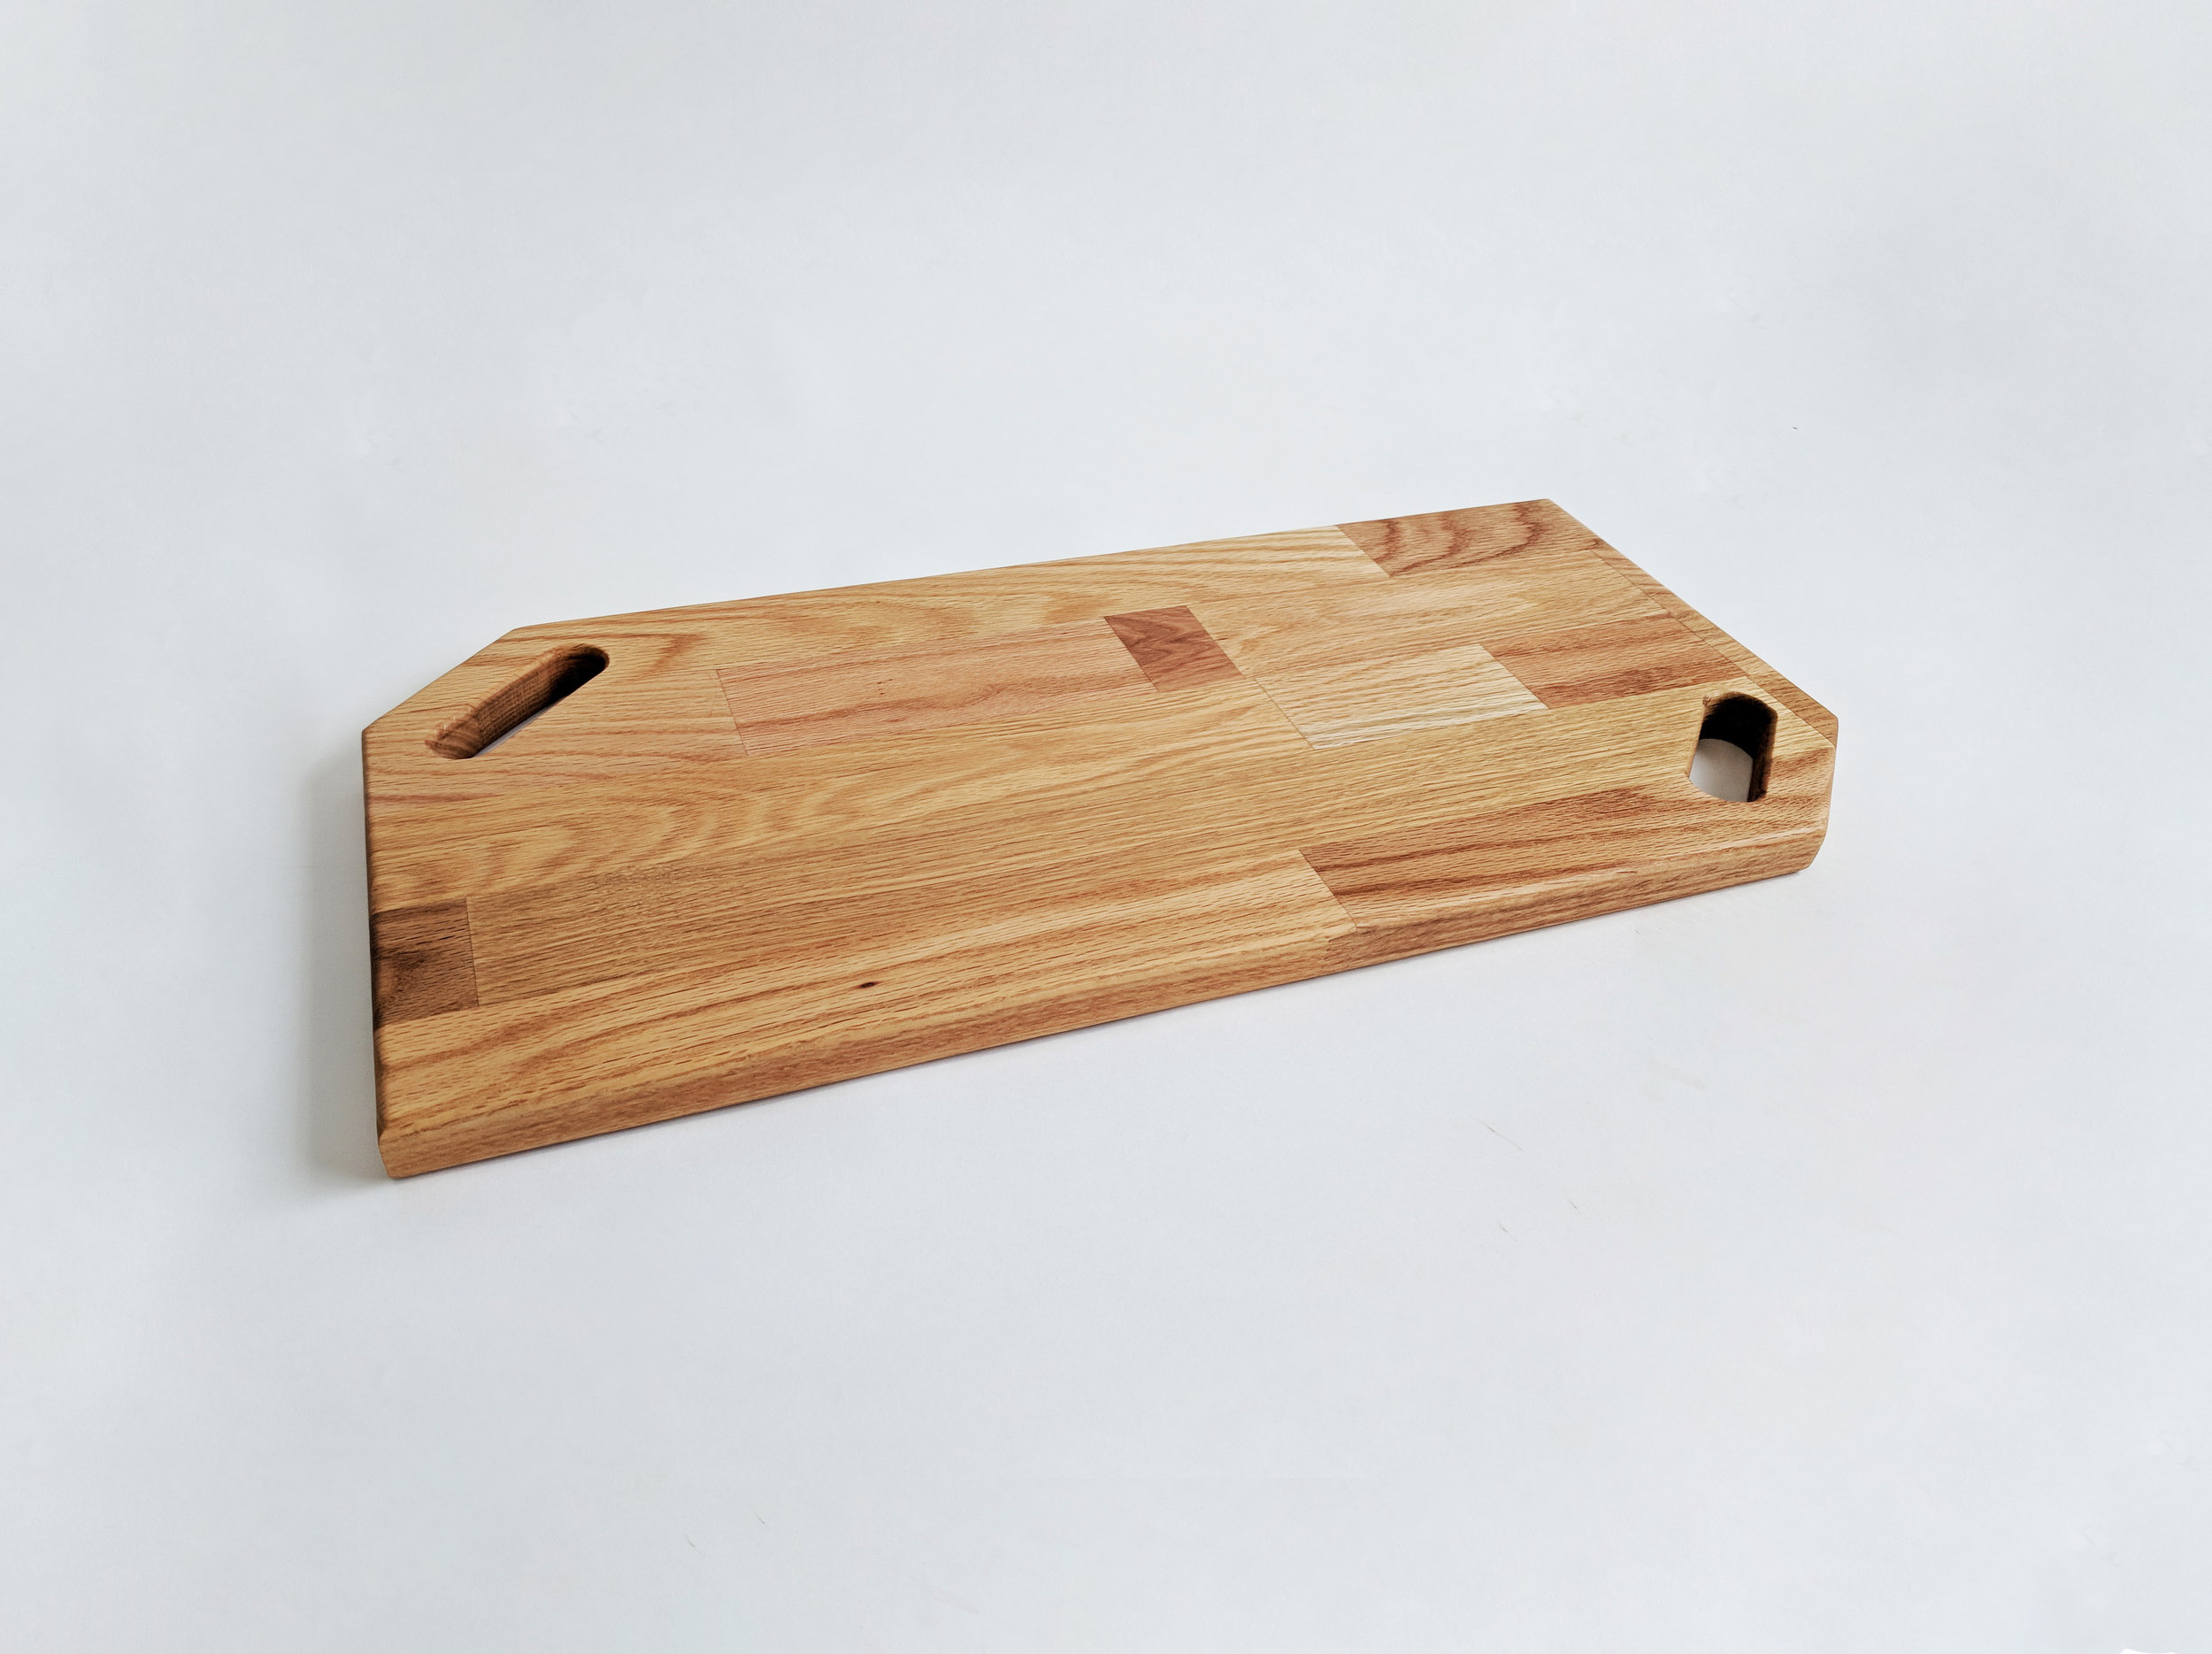 Oak Cutting Board 3.jpg